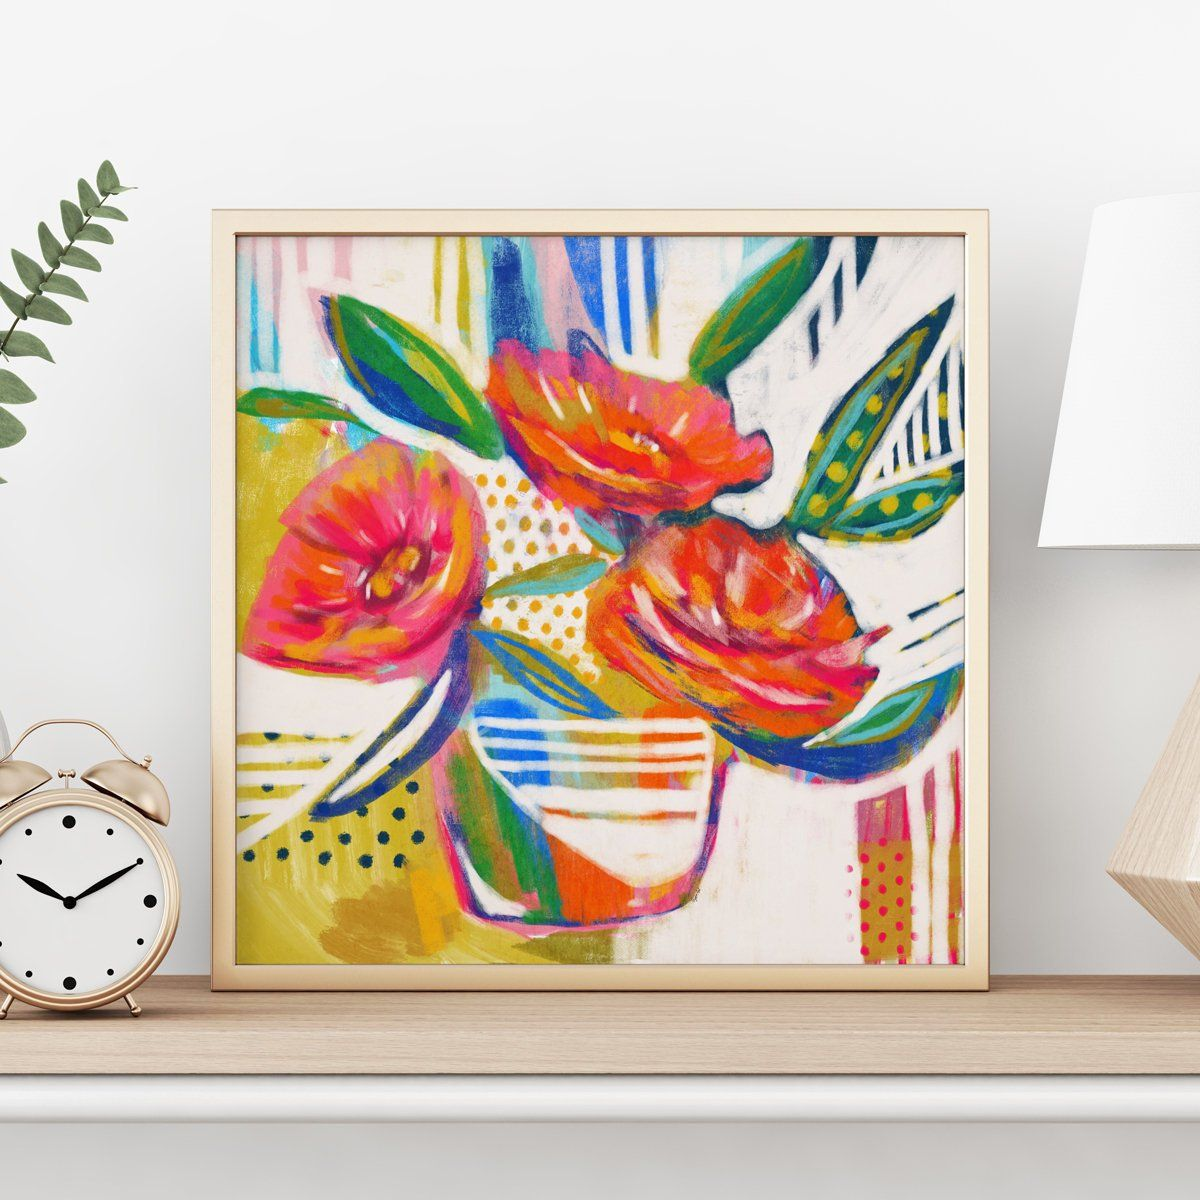 Floral Bouquet Print Digital Art Digital Painting Abstract Floral Poppy Flowers Painting Flower Painting Flora Flower Painting Abstract Floral Floral Art